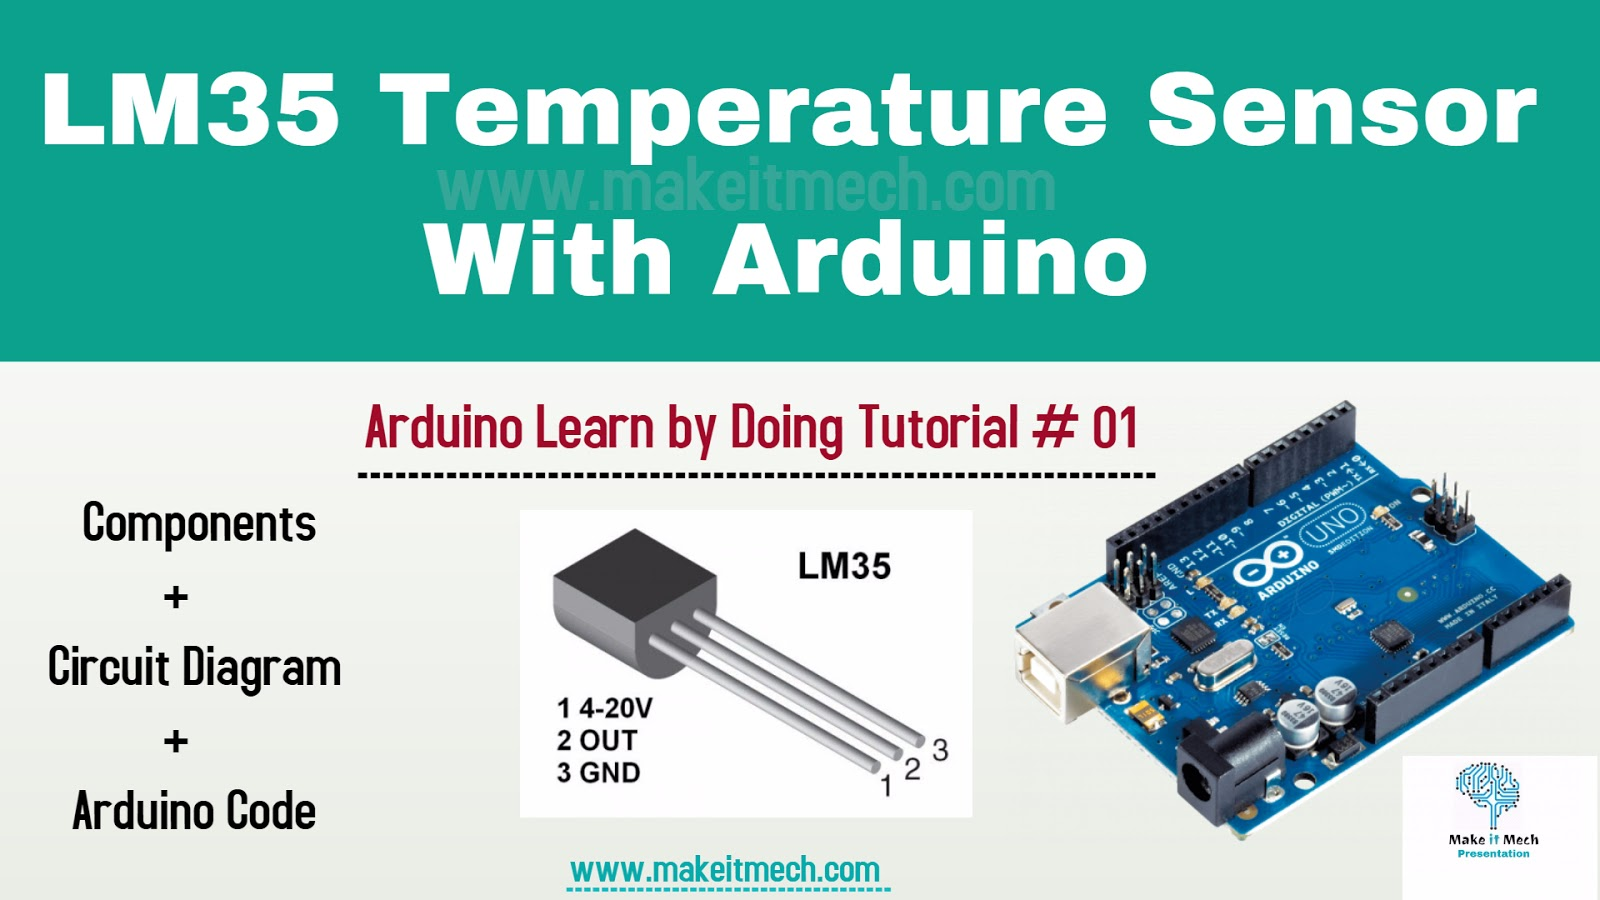 Labwire How To Use Lm35 Temperature Sensor With Arduino Diagram Circuit And Code Complete Tutorials Projects Source